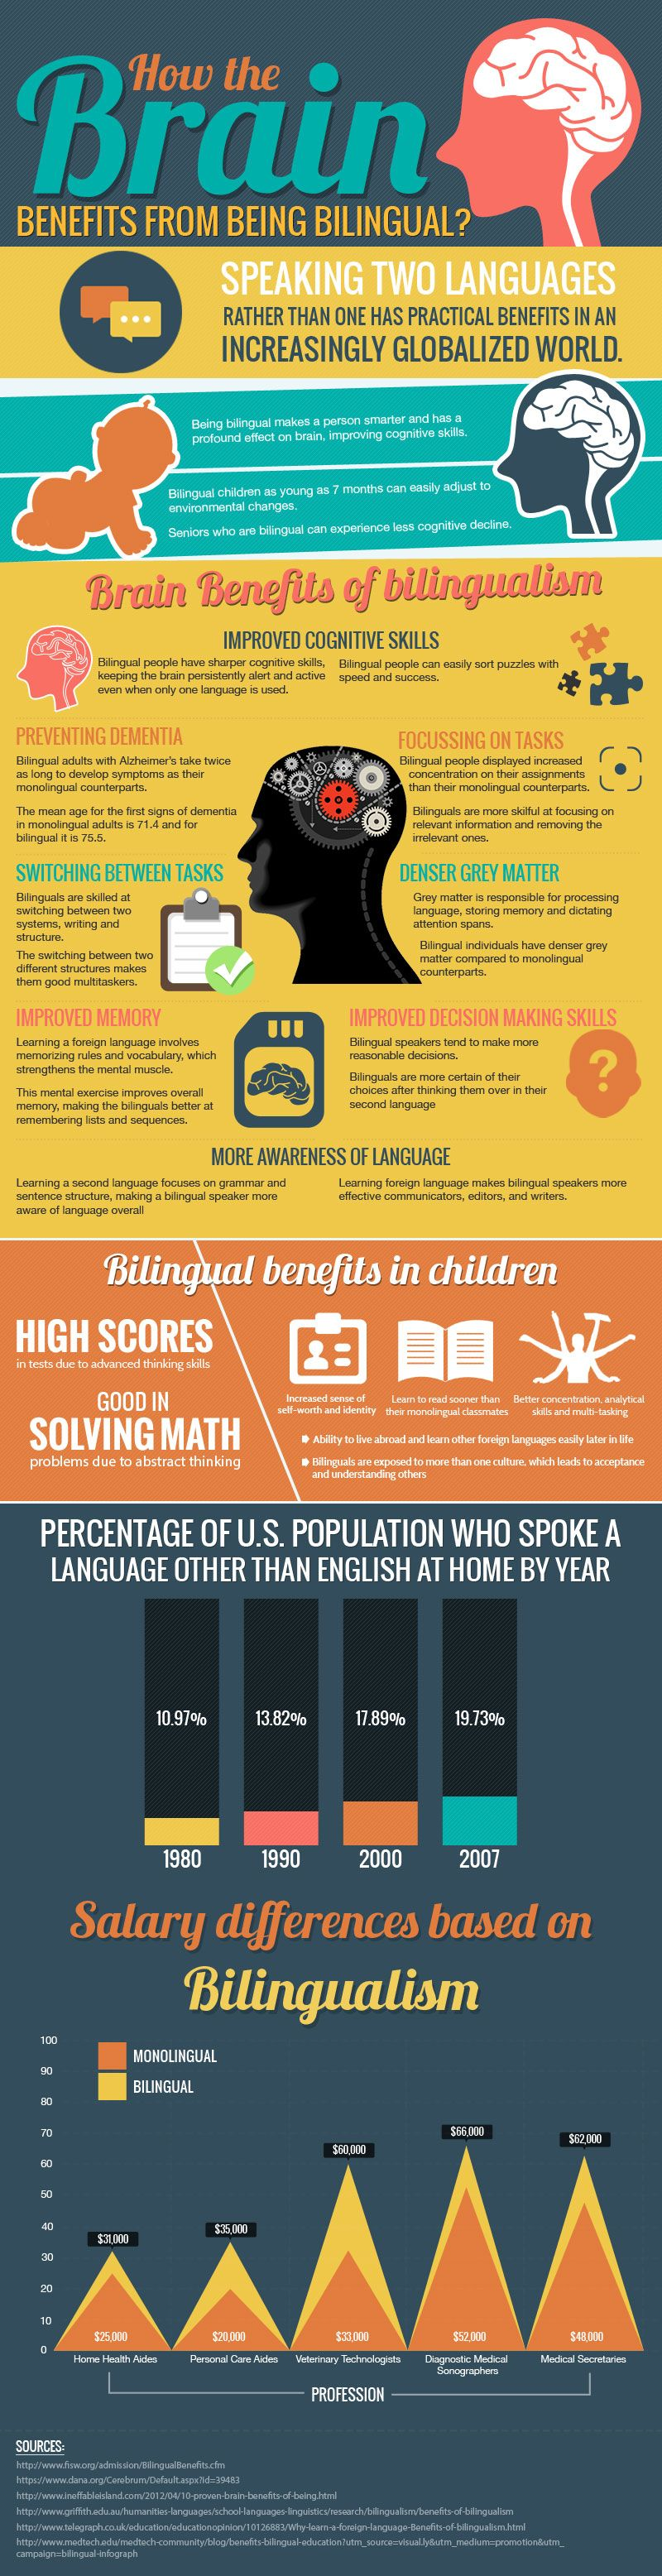 How To Write An Essay For High School Students How The Brain Benefits From Being Bilingual Cause And Effect Essay Papers also Examples Of A Proposal Essay How The Brain Benefits From Being Bilingual Infographic  Brain  Sample Narrative Essay High School